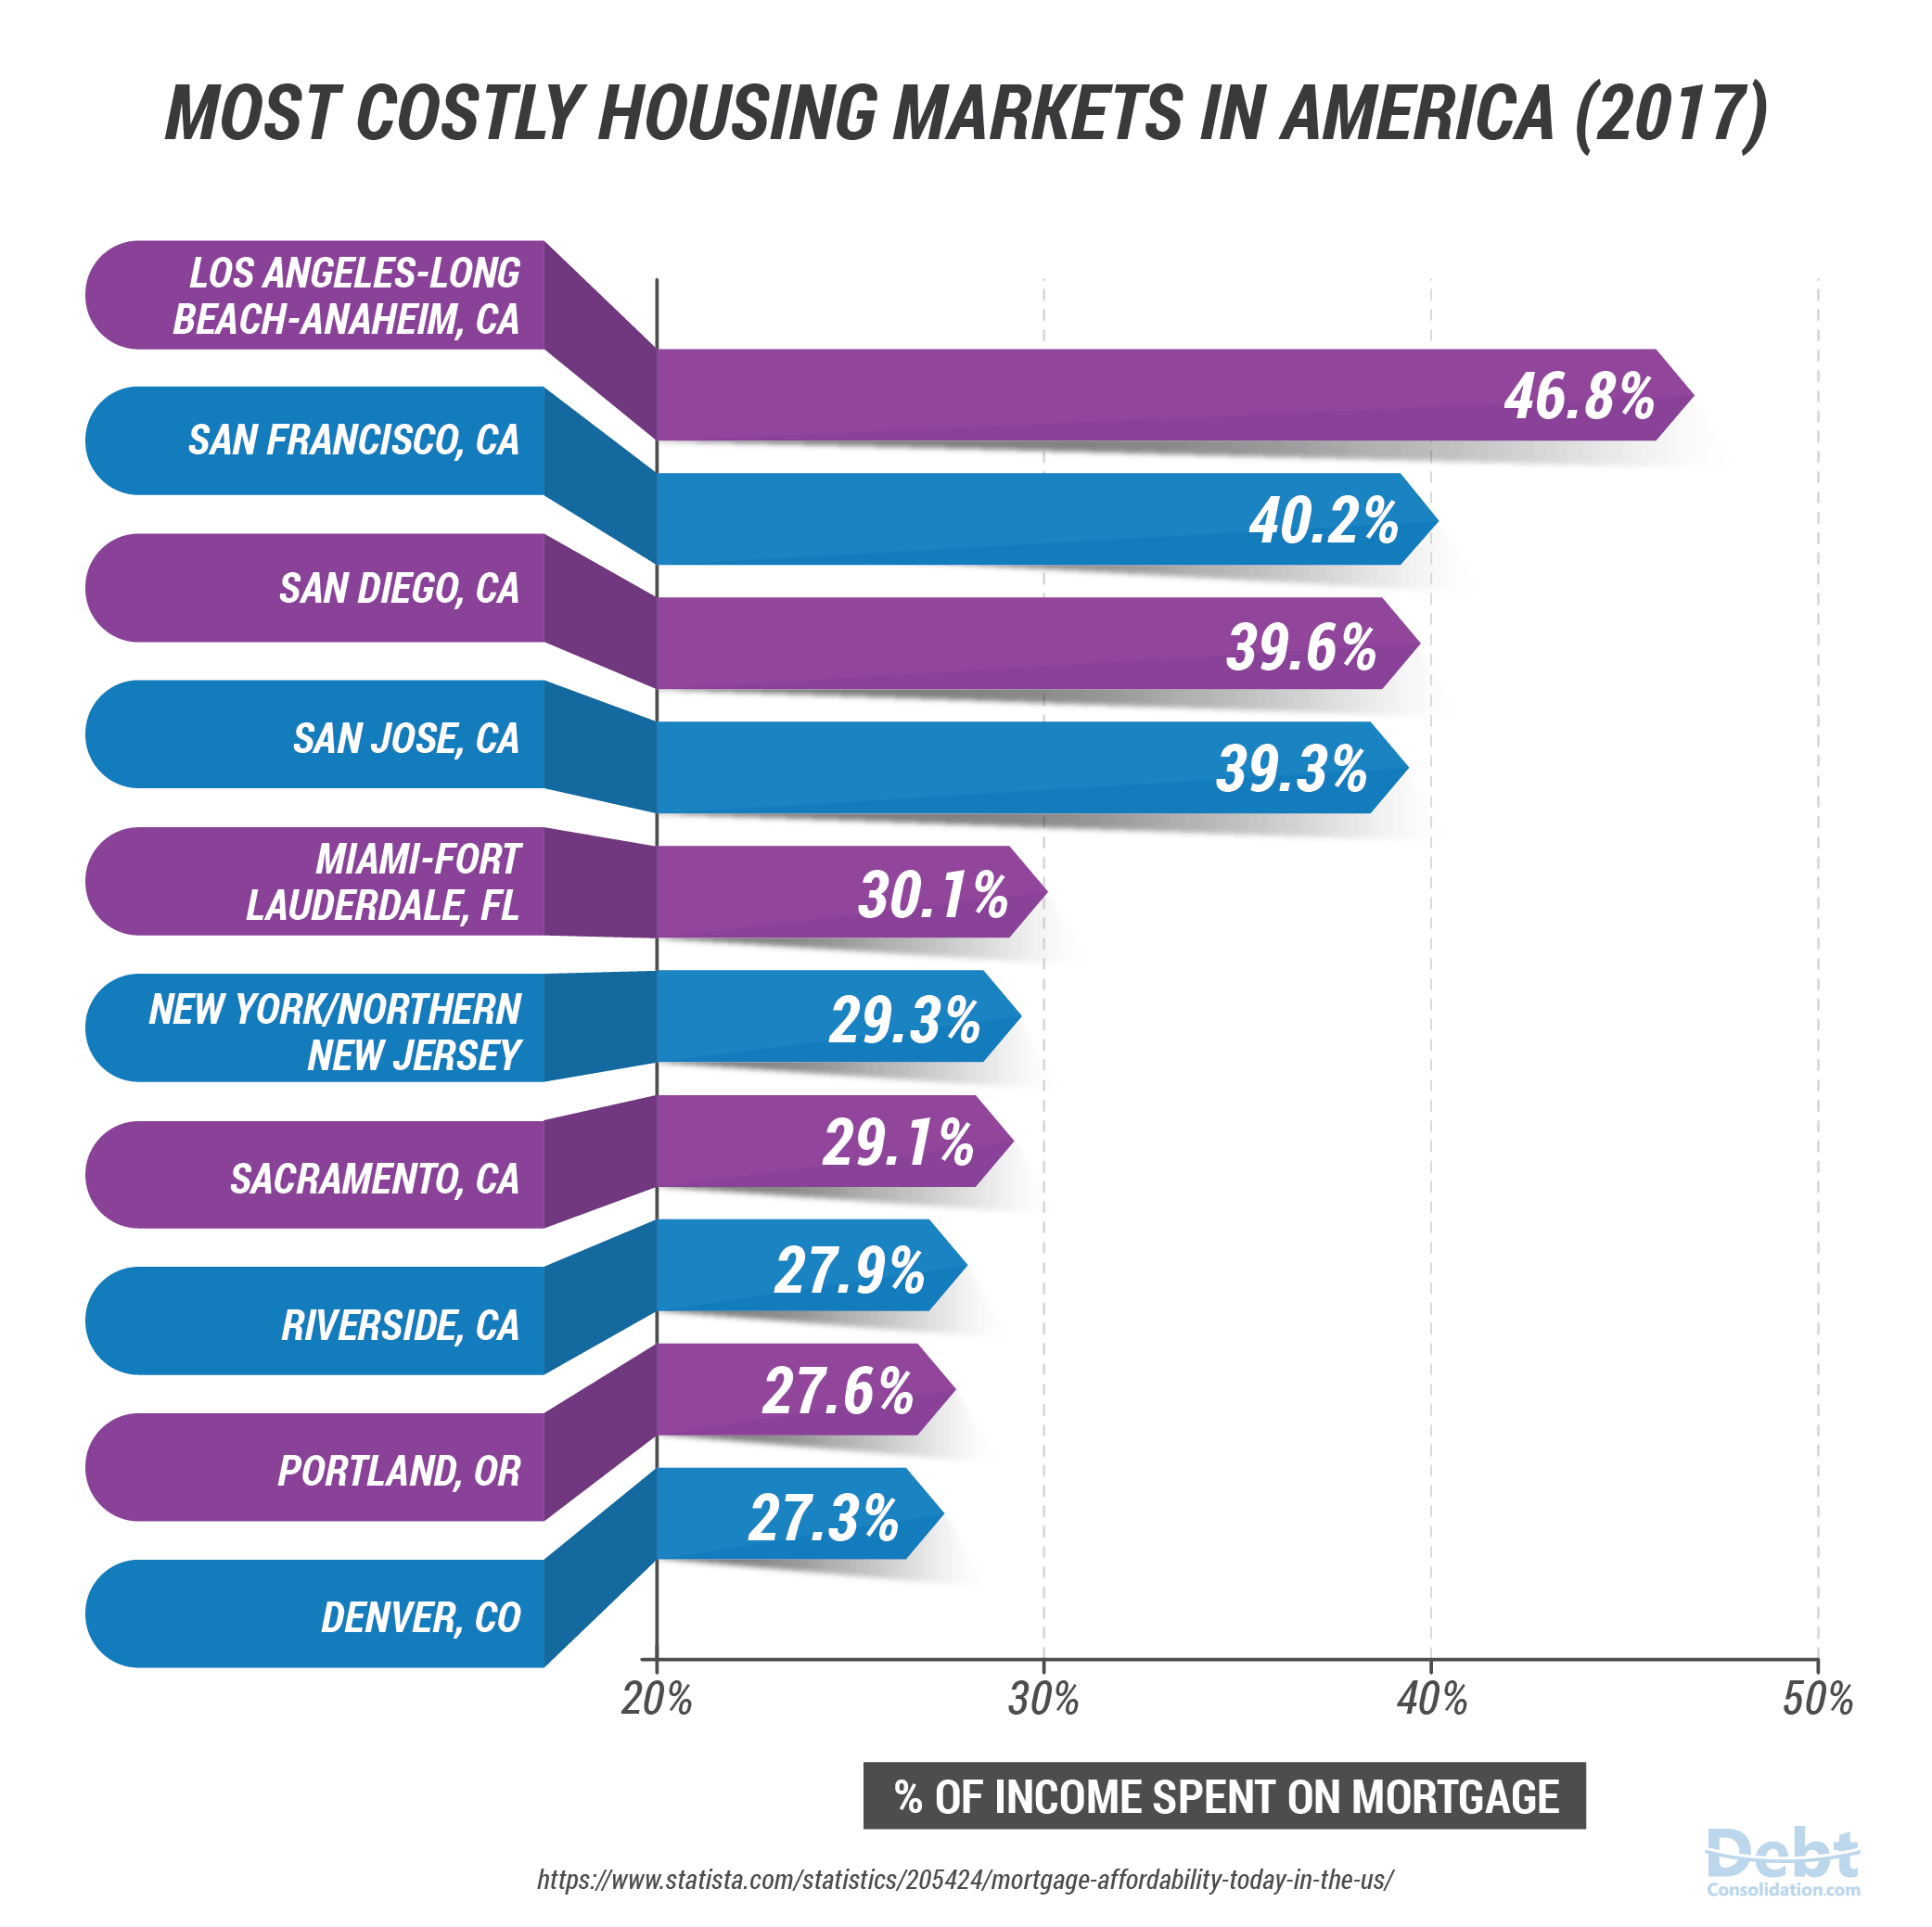 Most Costly Housing Markets In America in 2017